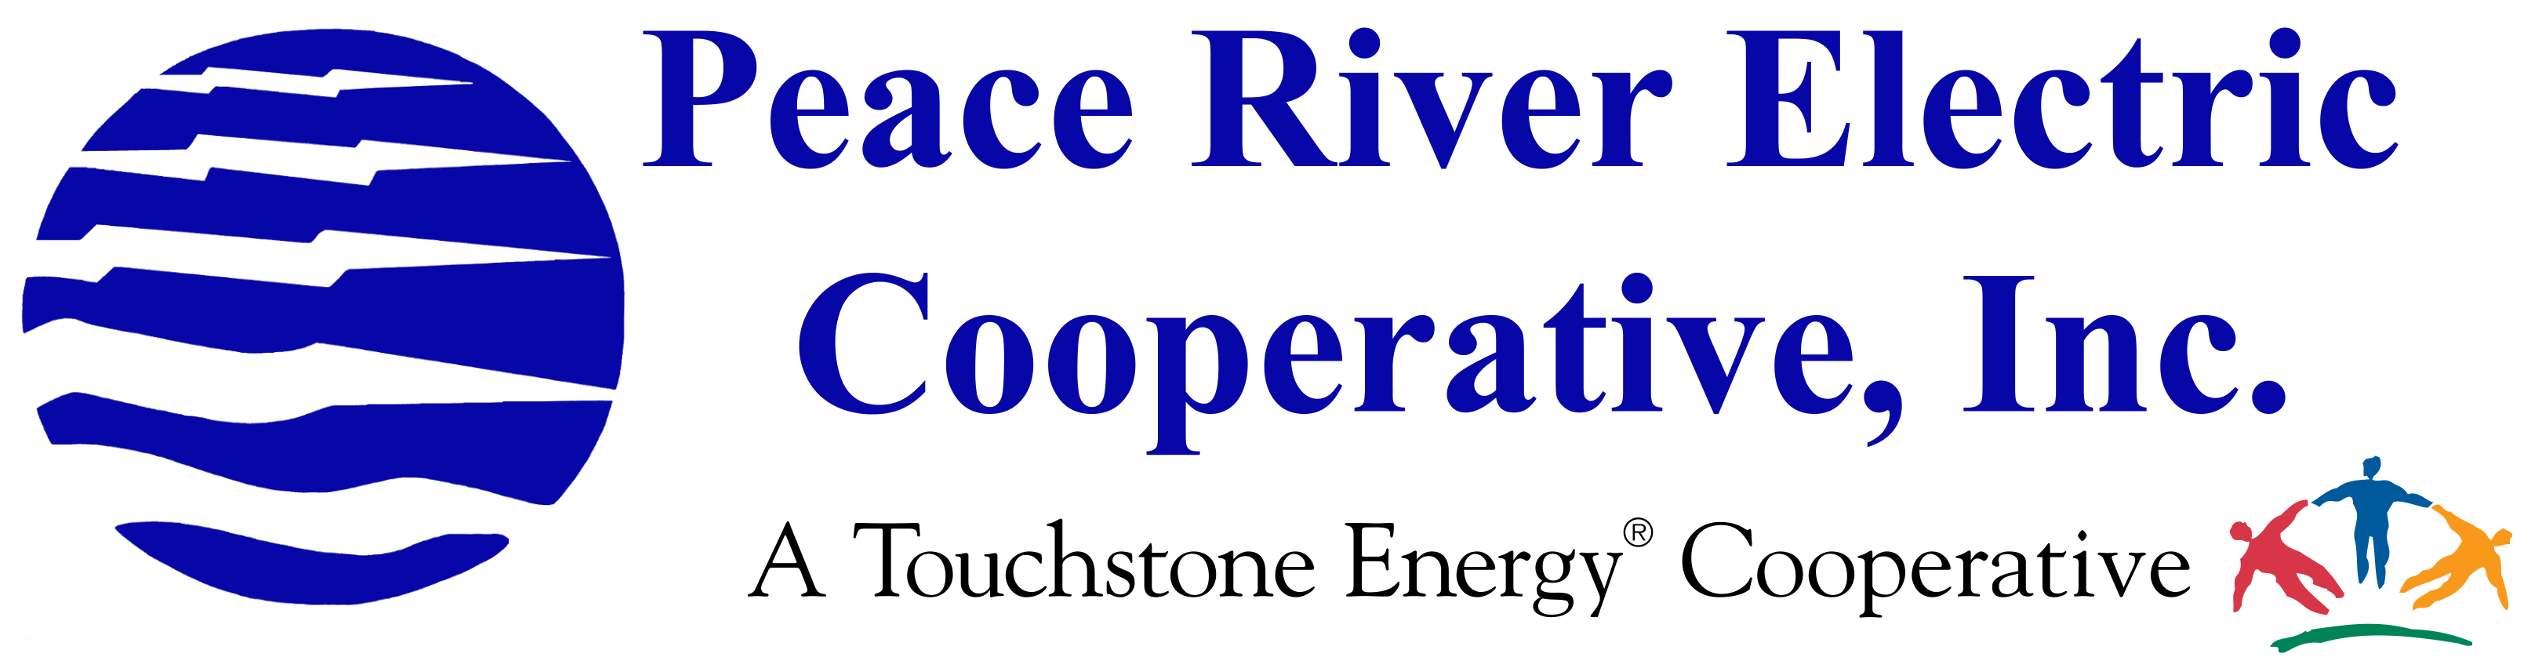 Peace River Electric Cooperative, Inc.